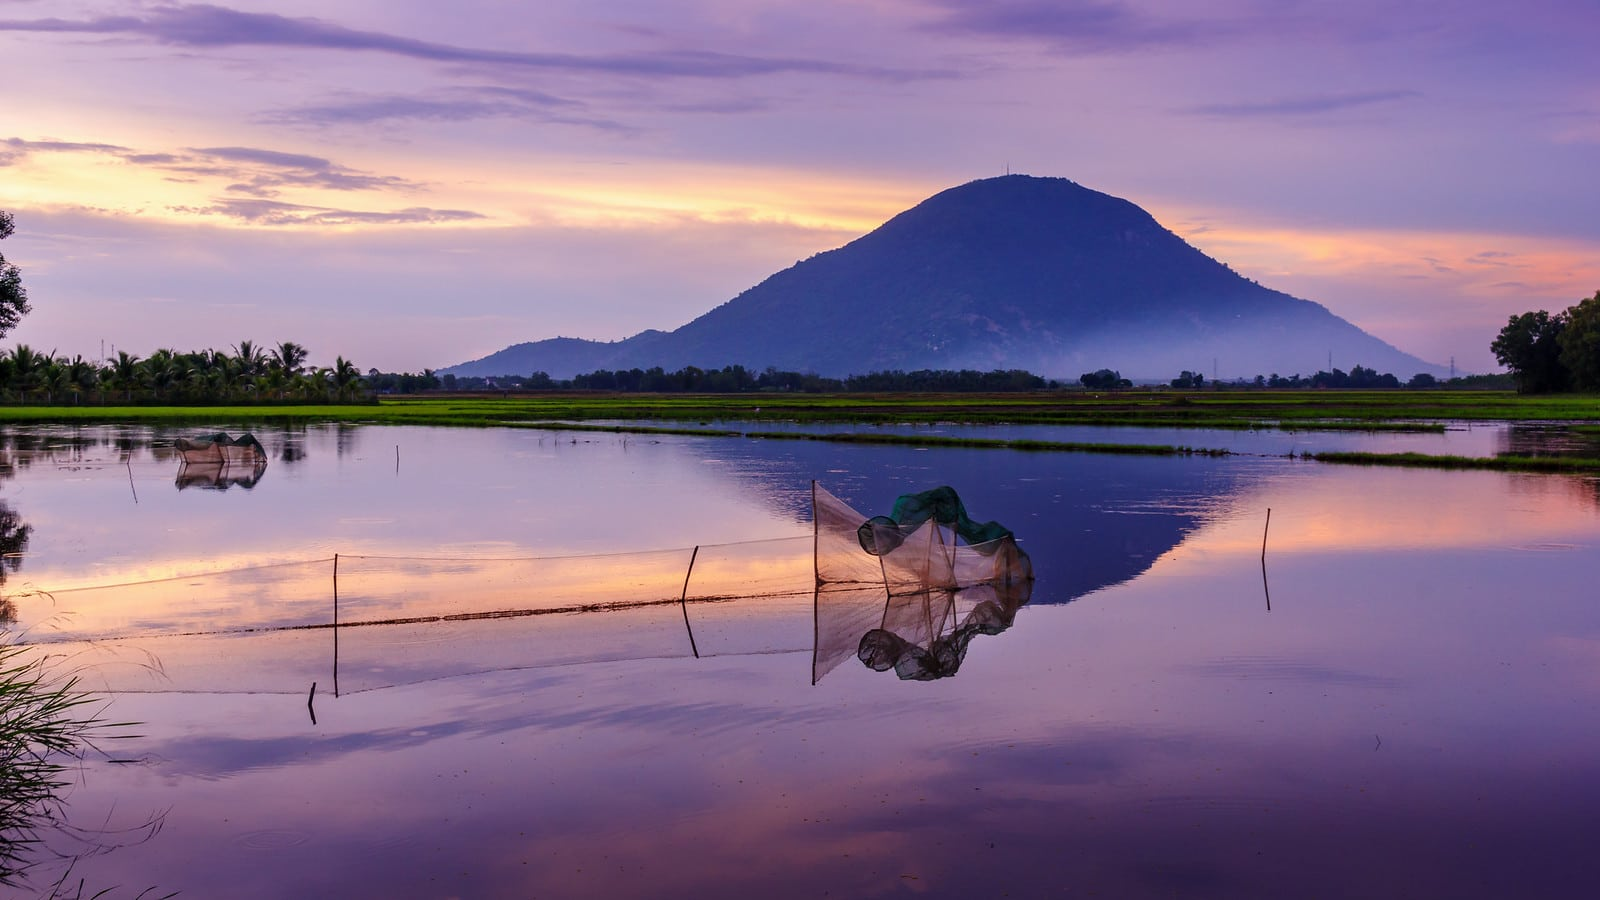 Lake and Mountain View in Tay Ninh, Vietnam